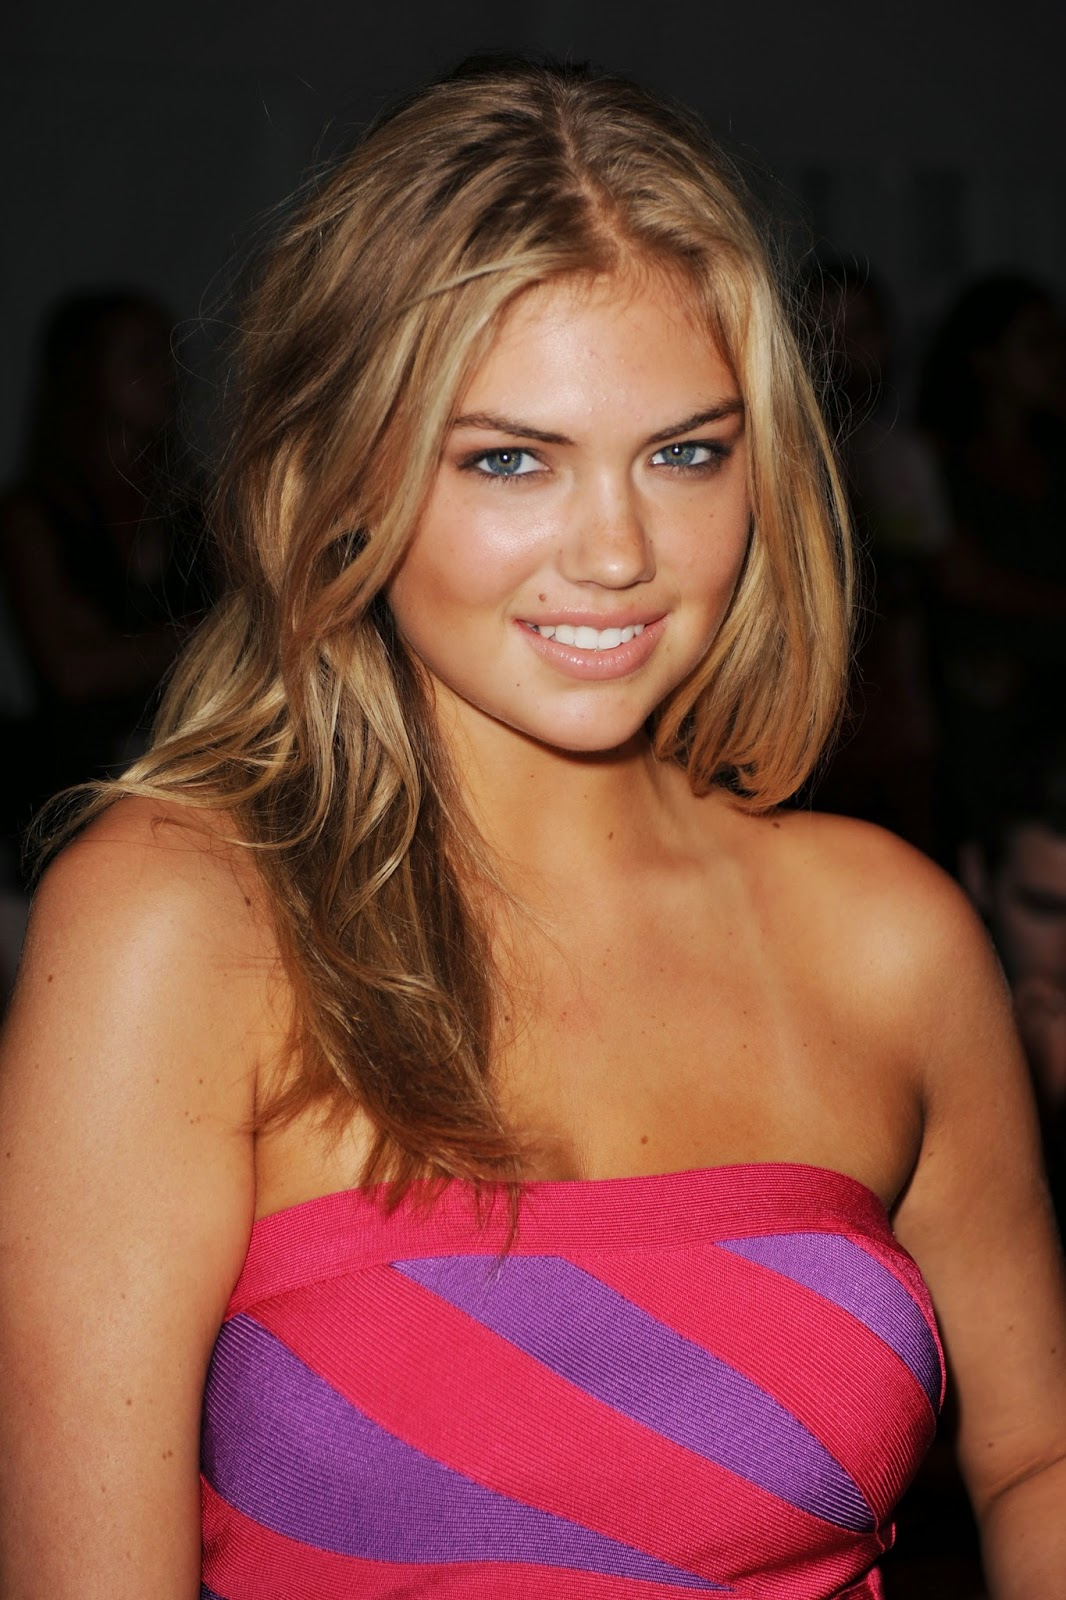 Kate Upton: Kate Upton Hot And Sexy Pics(images) 2014